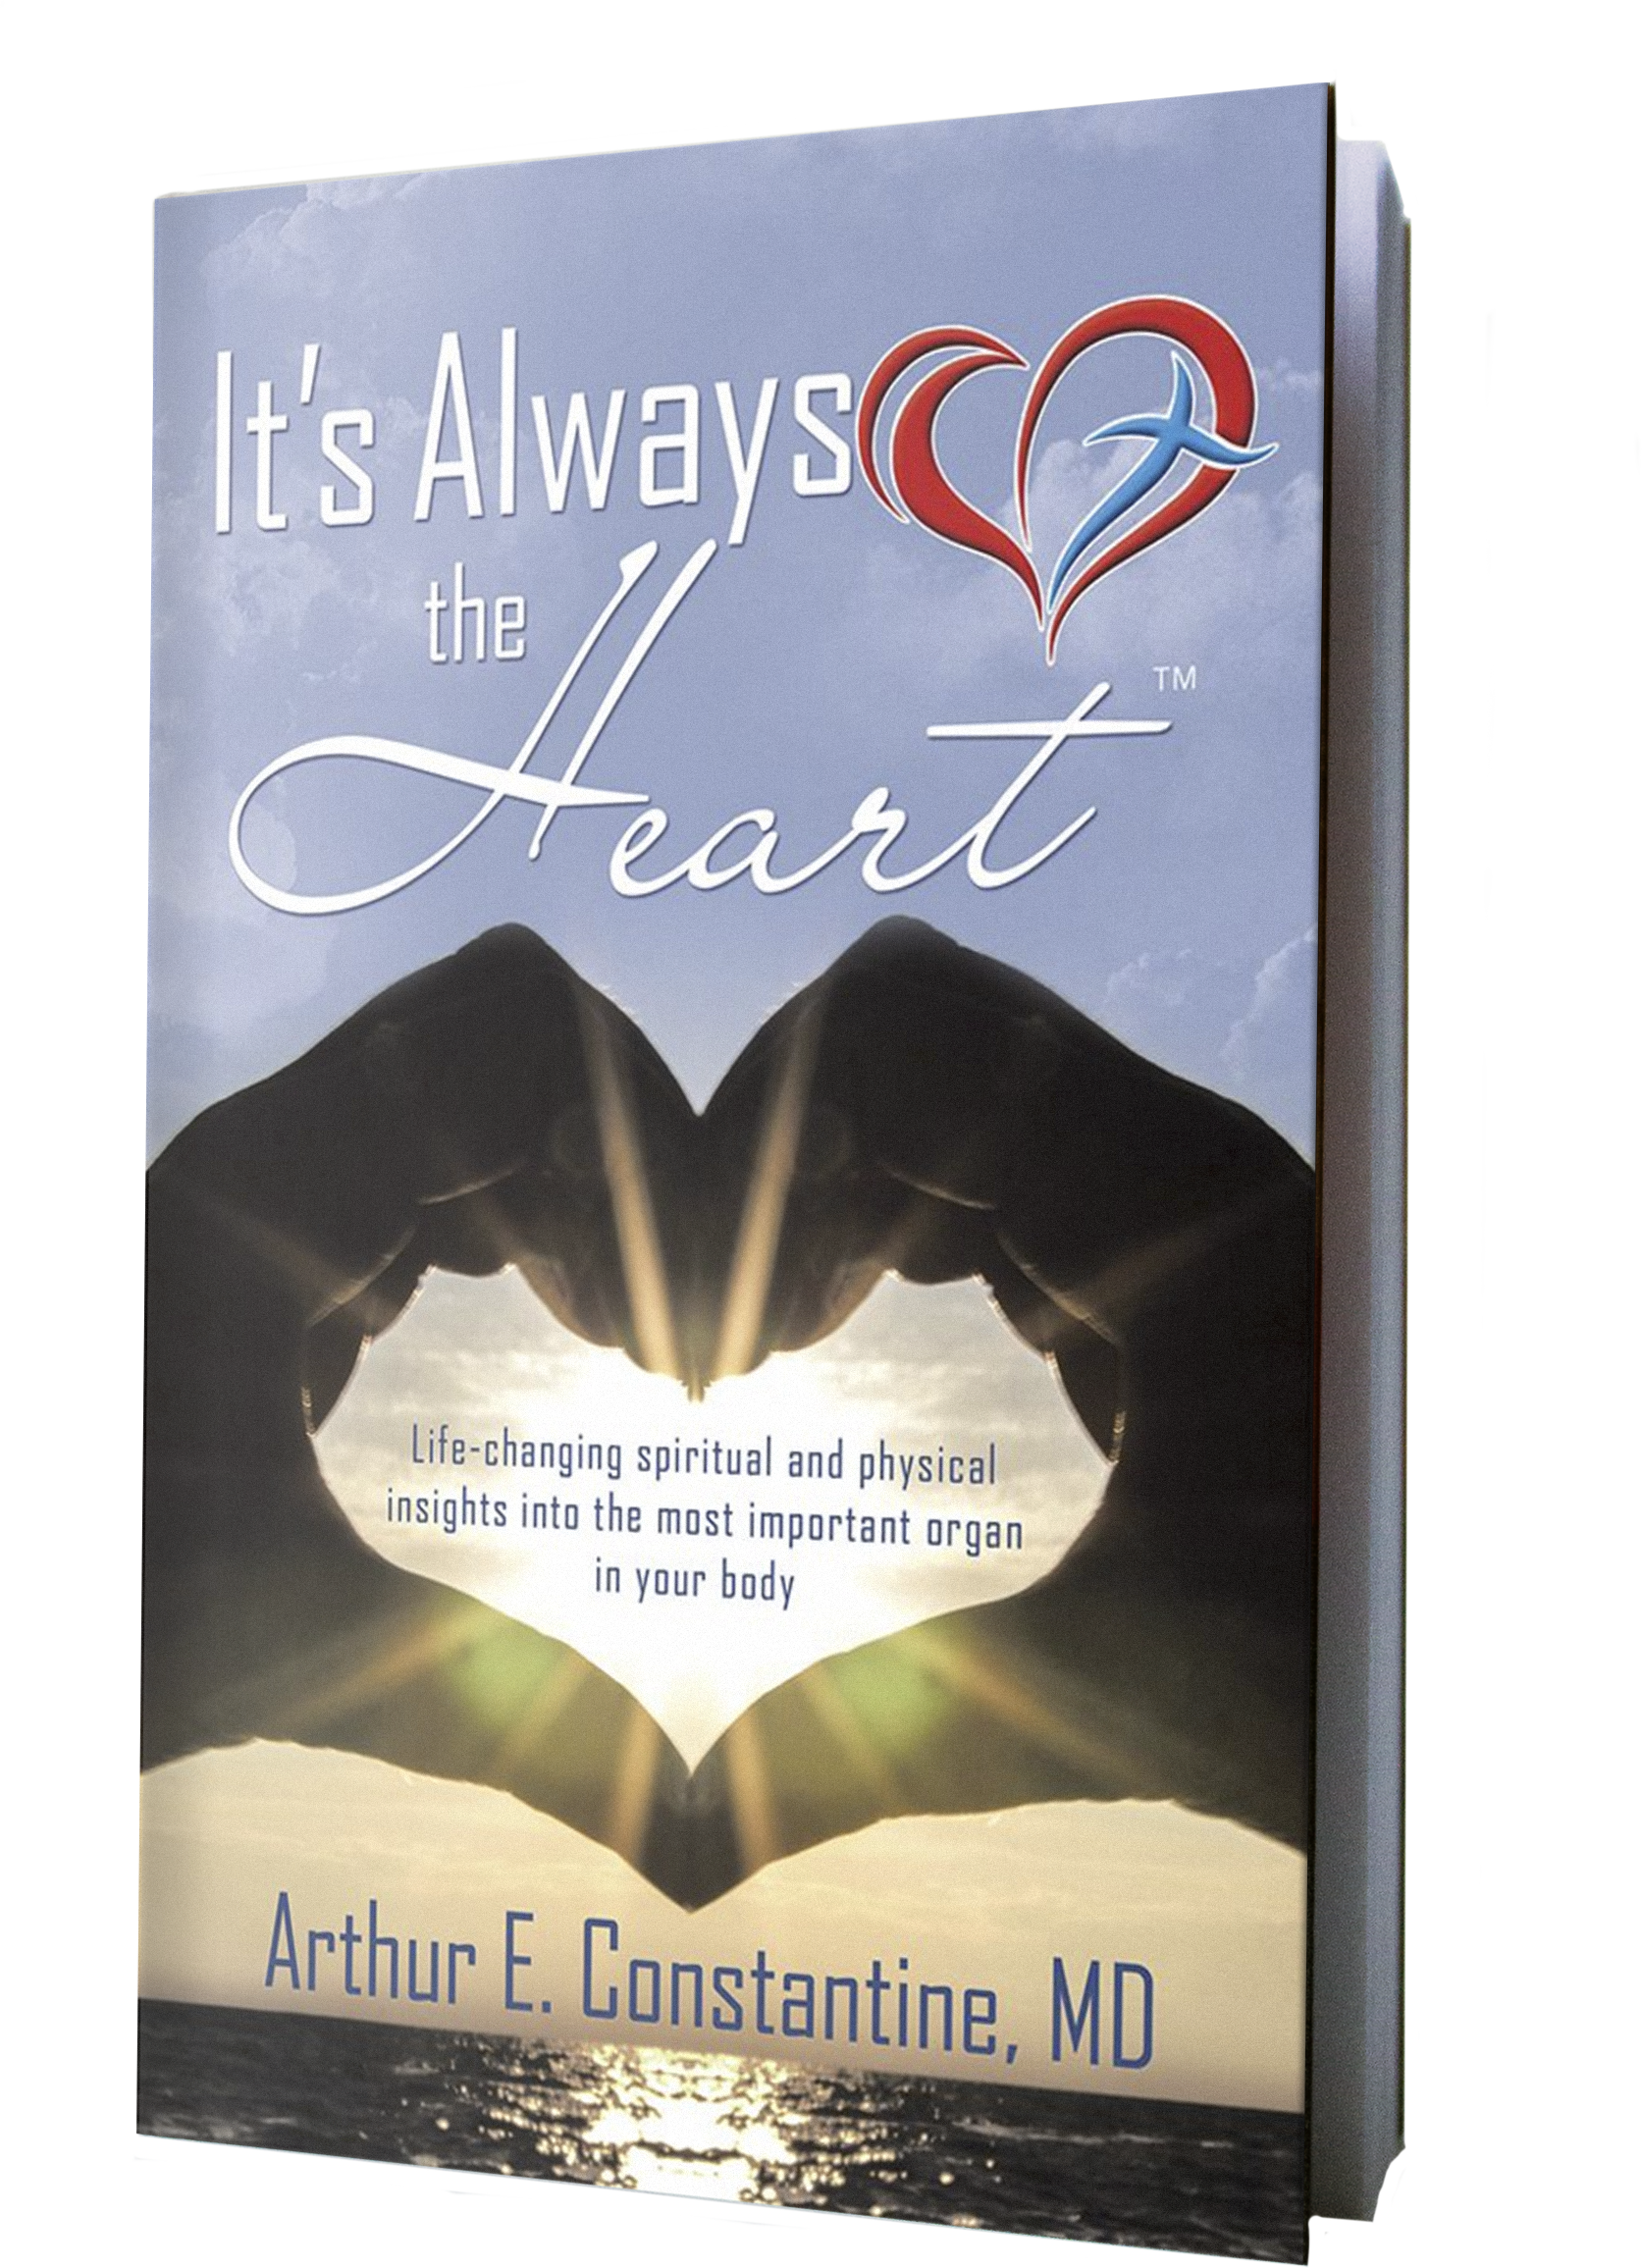 It's Always the Heart by Dr. Arthur E. Constantine, M.D. stresses the importance of spiritual fitness